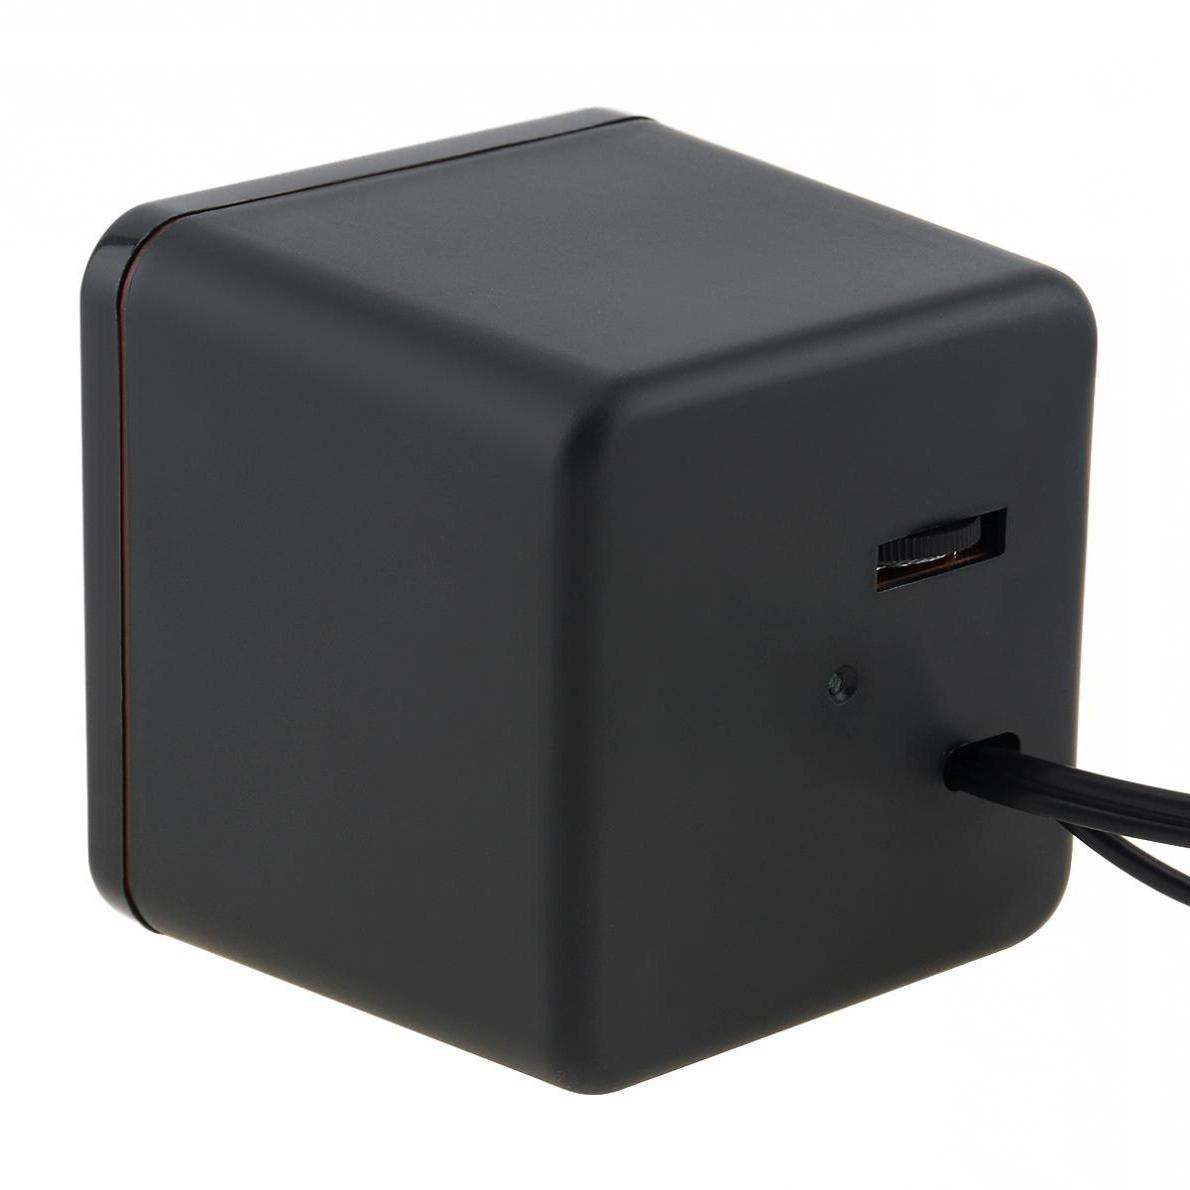 101Z USB 2.0 <font><b>Speakers</b></font> <font><b>Stereo</b></font> and Powered for Laptop Smartphone